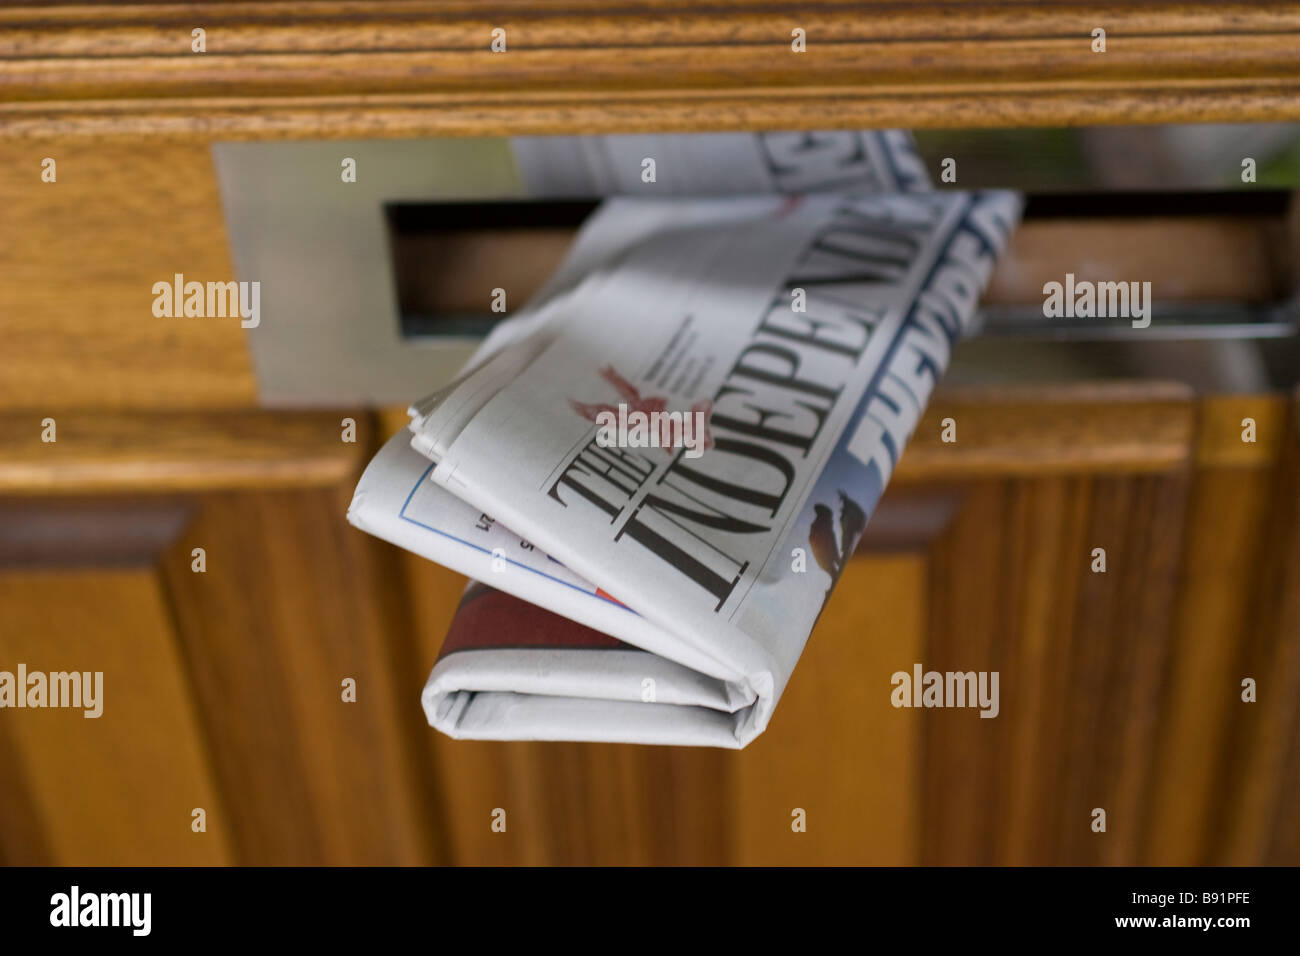 Uk print newspaper Press The Independent daily - Stock Image